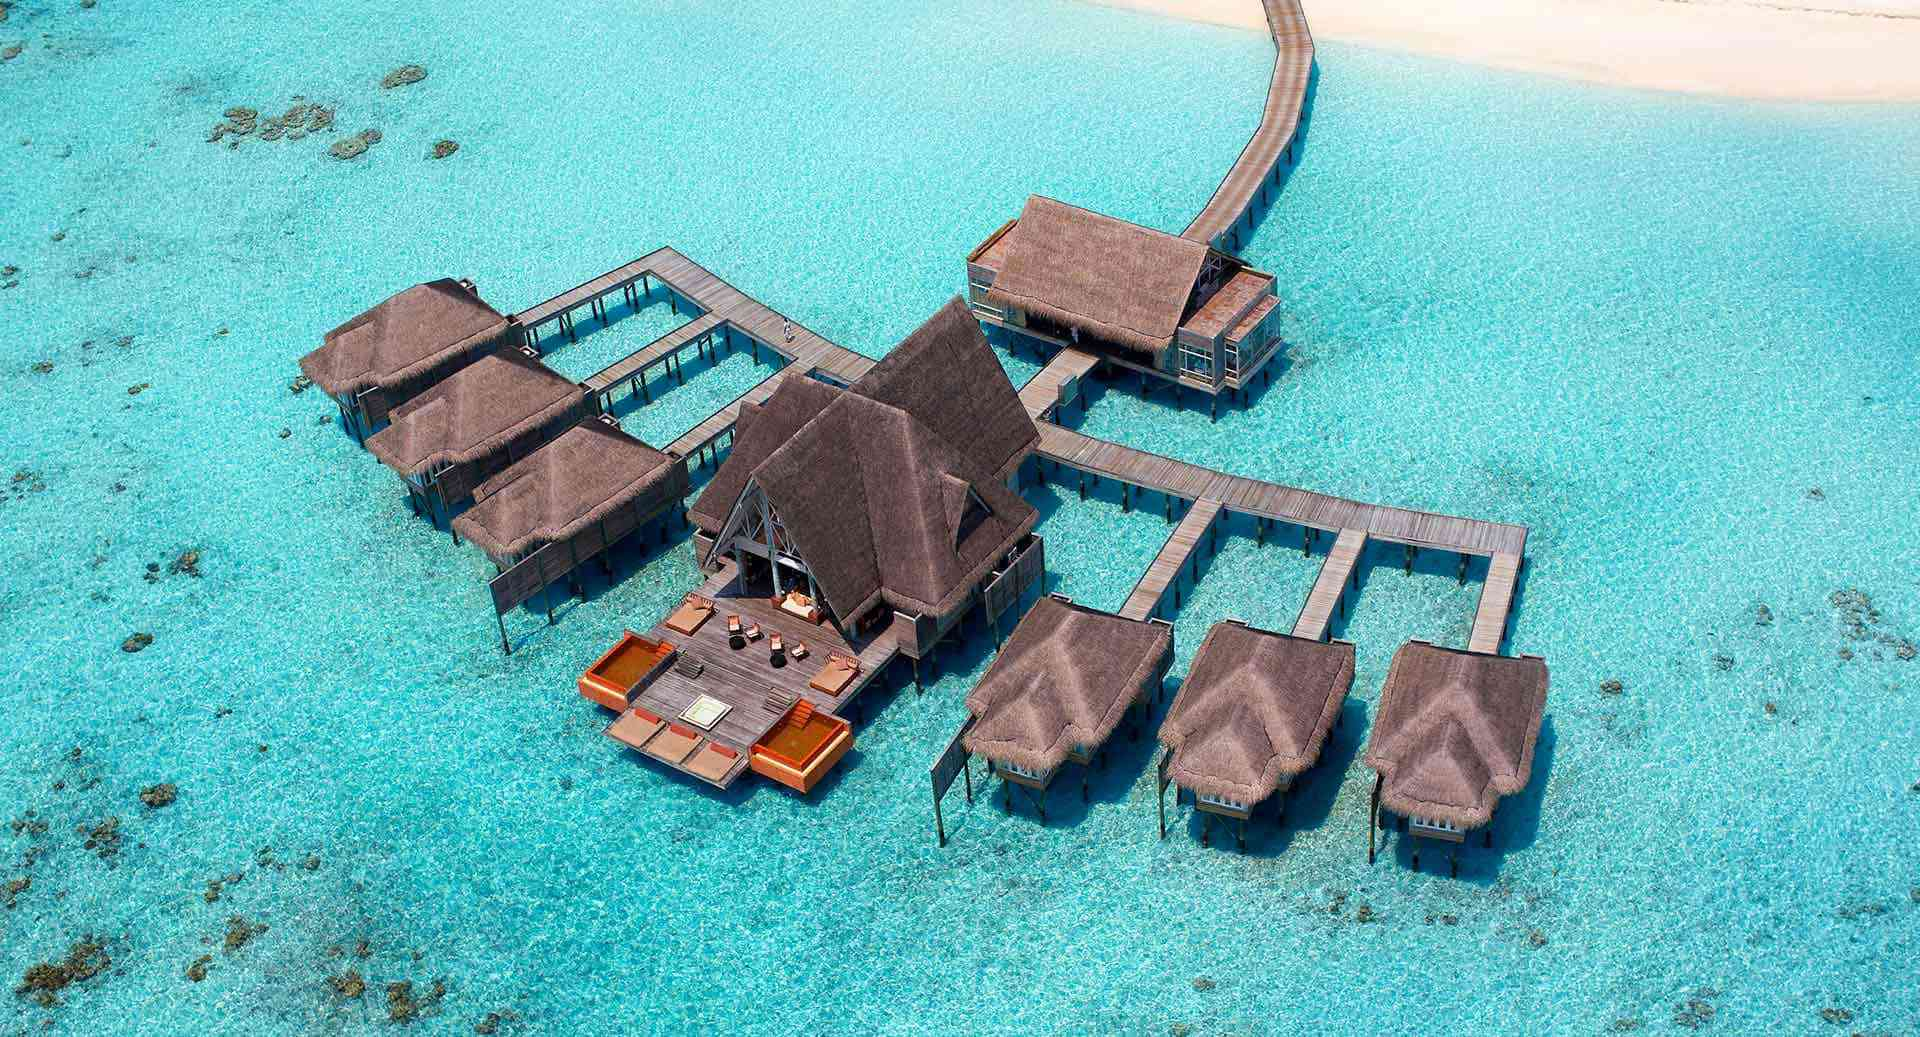 Aerial view of Overwater treatment rooms and wooden pathways at Anantara Kihavah spa